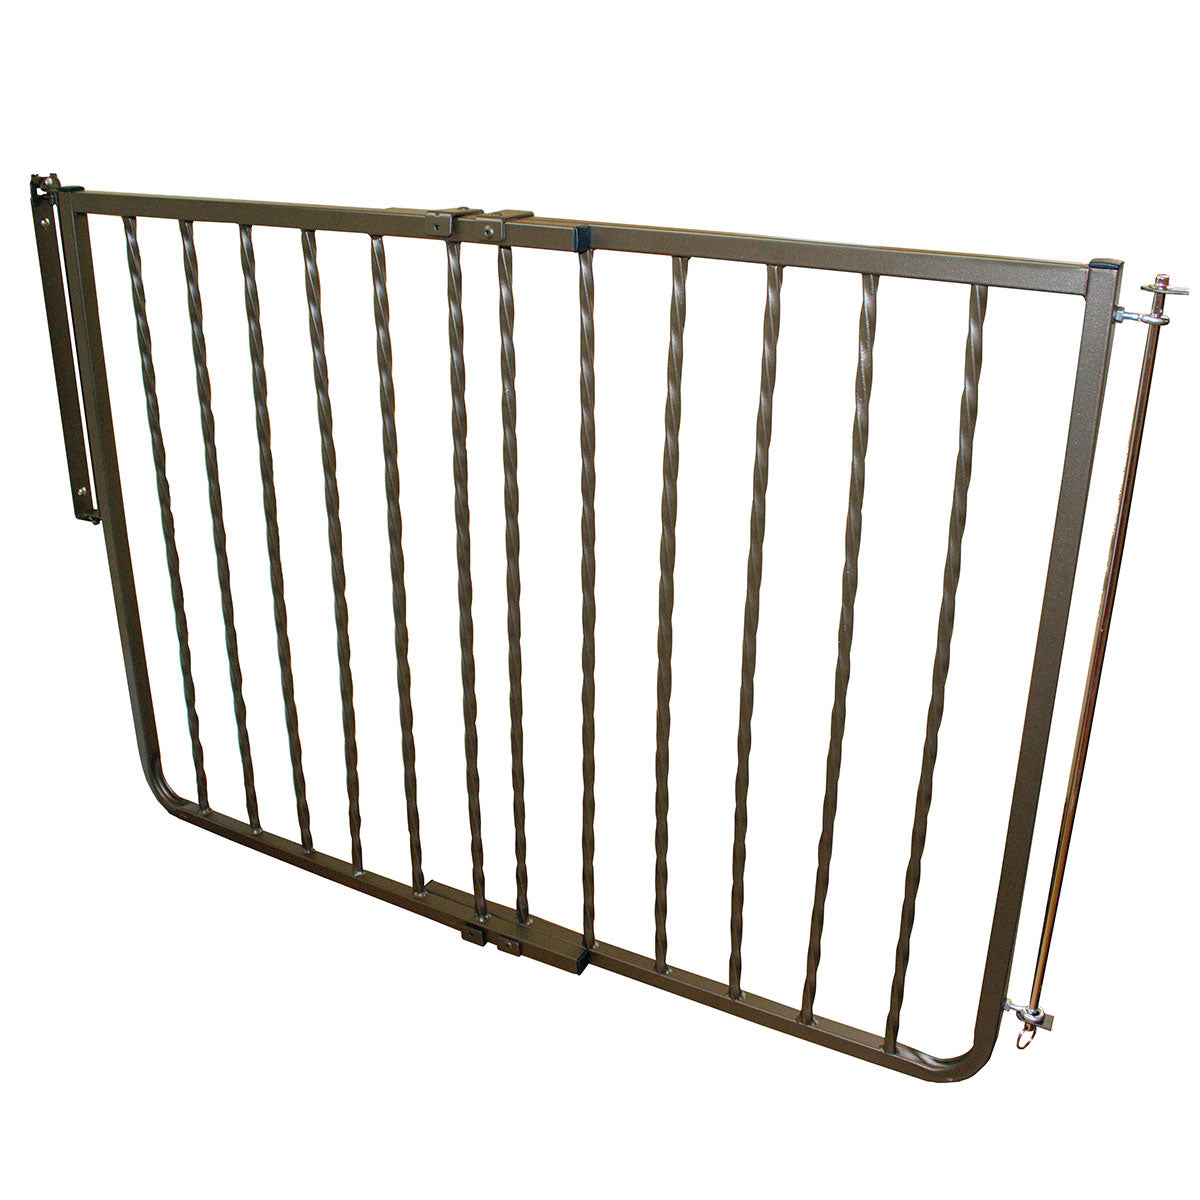 "Cardinal Gates Wrought Iron Decor Hardware Mounted Pet Gate Extension Bronze 10.5"" x 1.5"" x 29.5"" Dog Gates - London the Local"